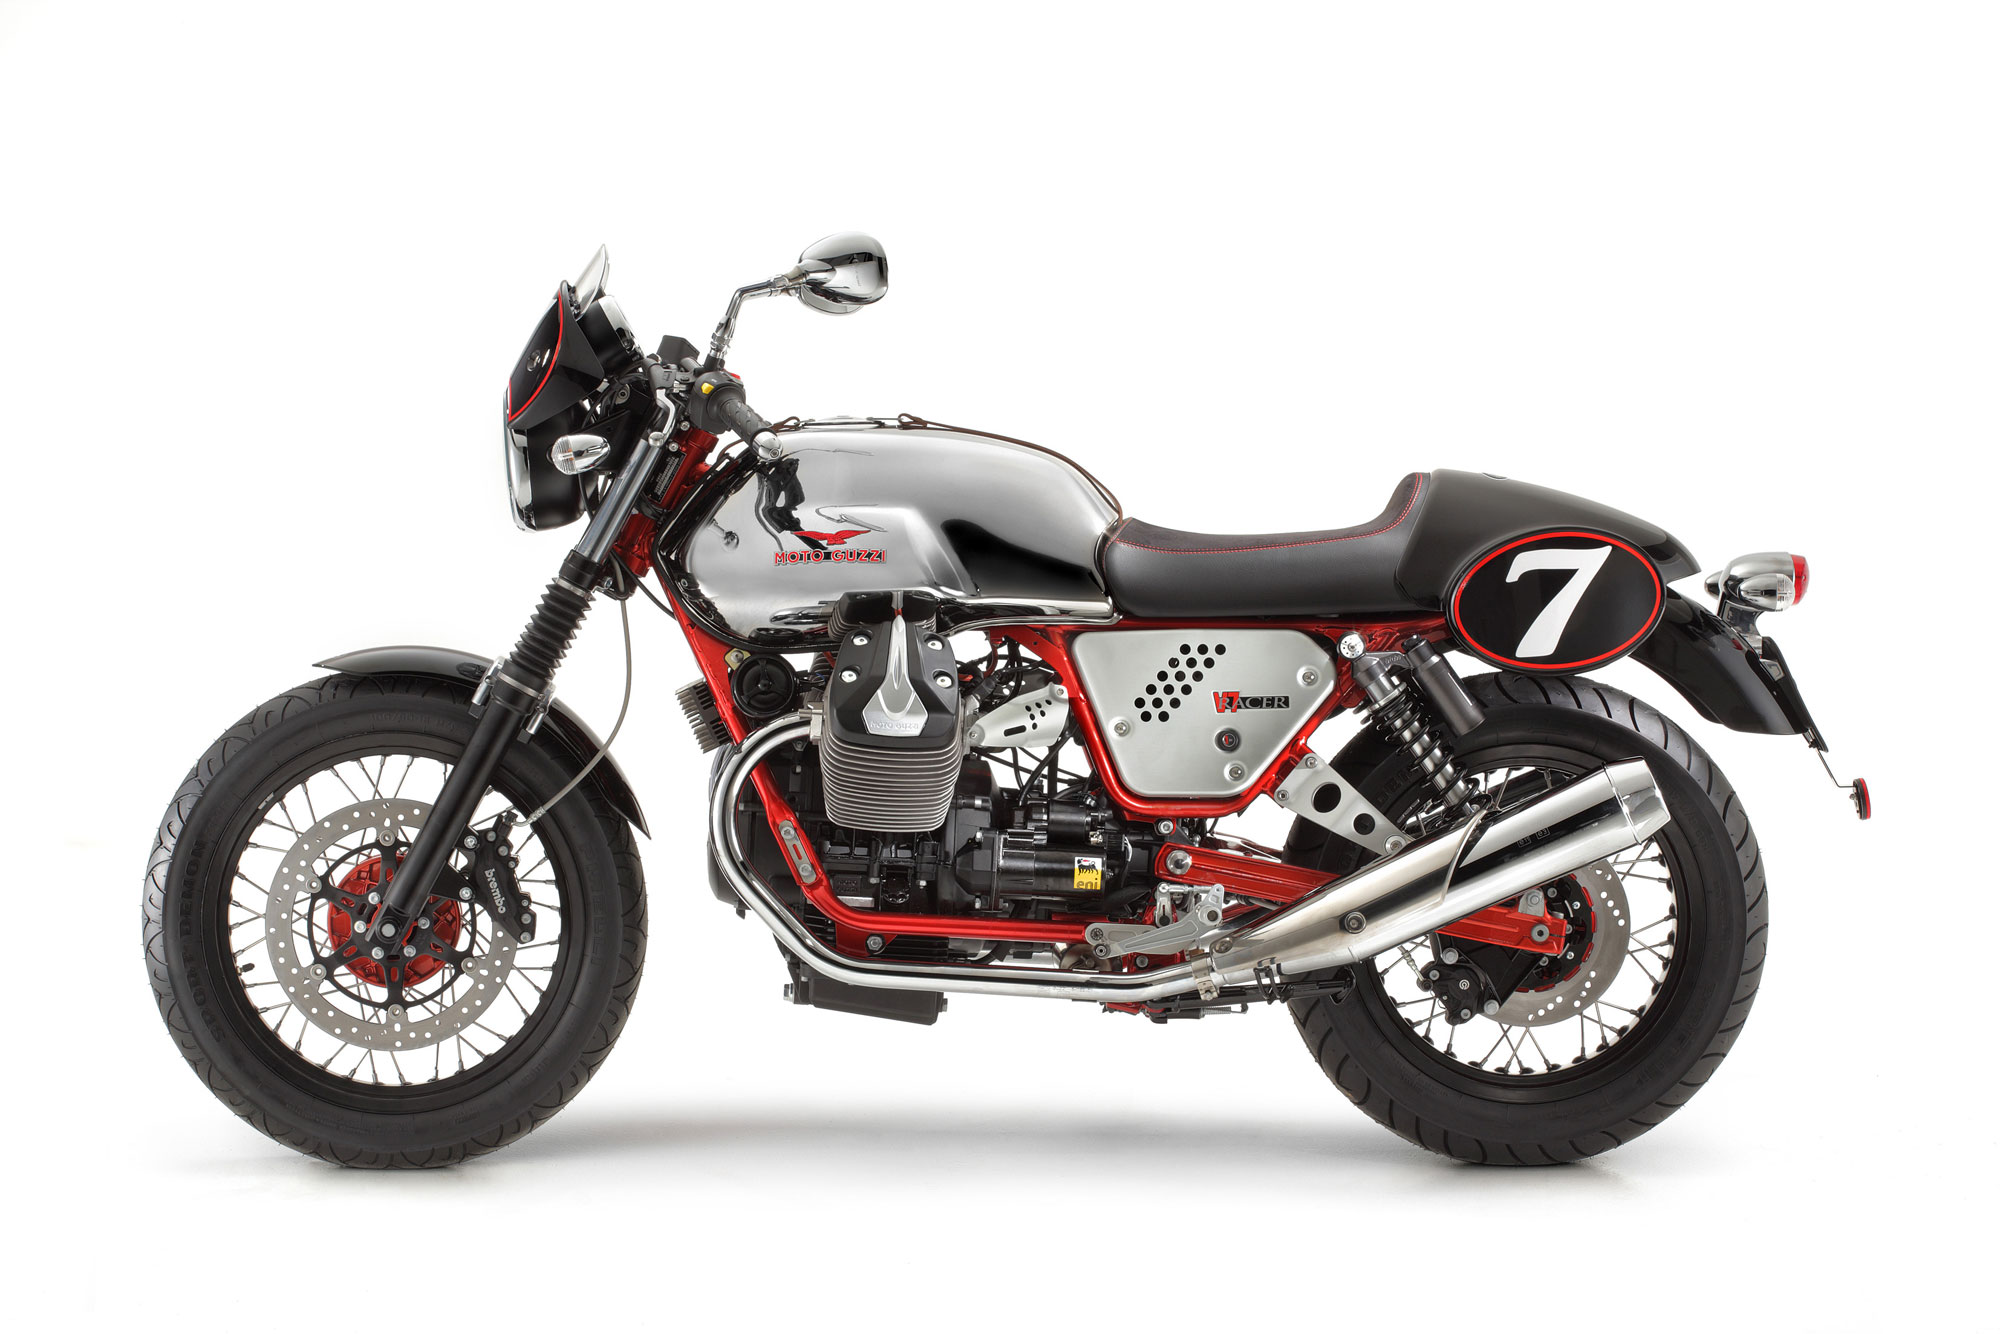 Moto Guzzi V7 Racer Limited Edition 2011 images #109586